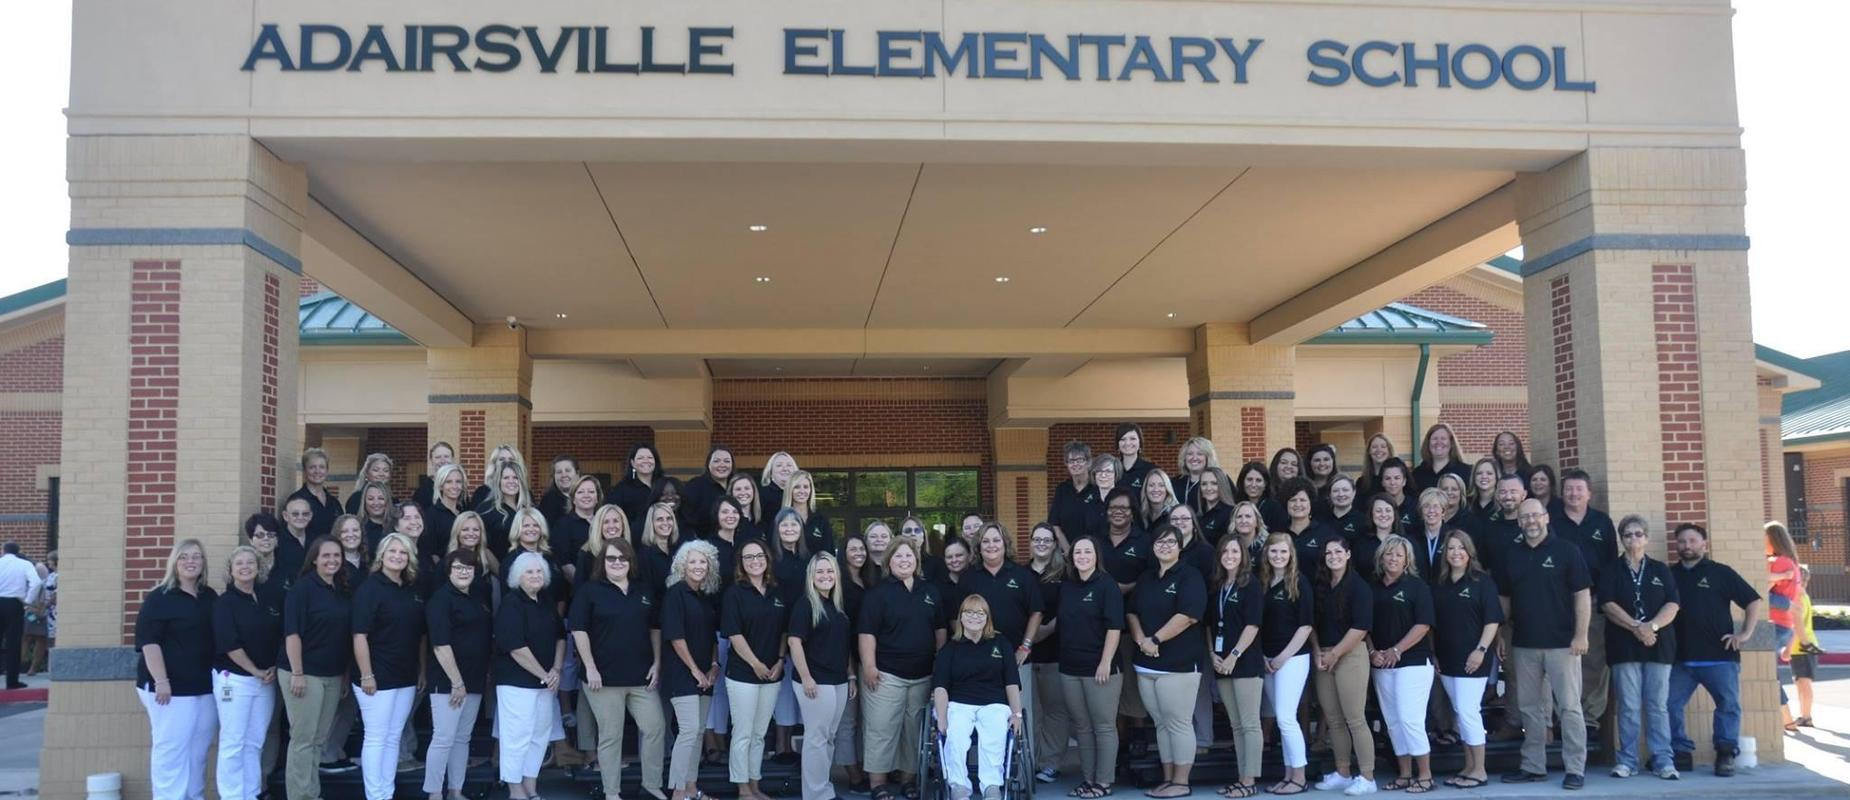 2018 AES Staff